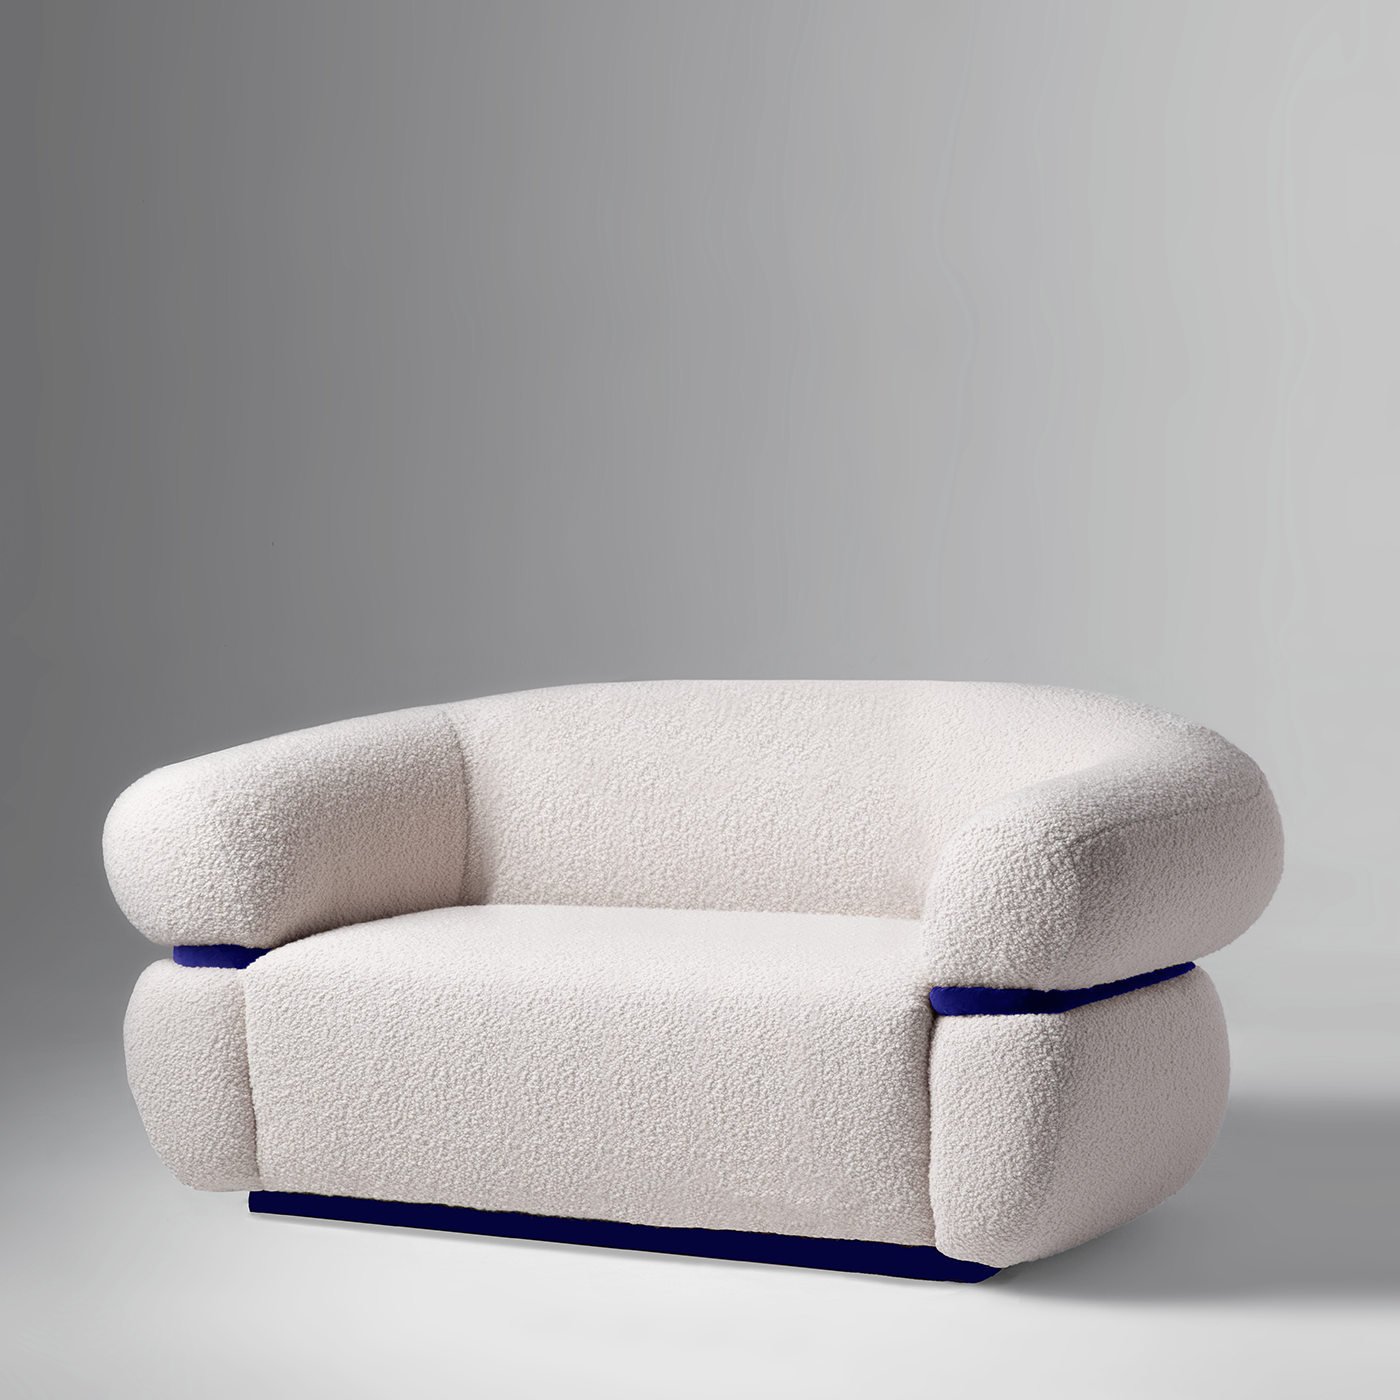 Malibu Settee Carlyle Collective With Images Minimalist